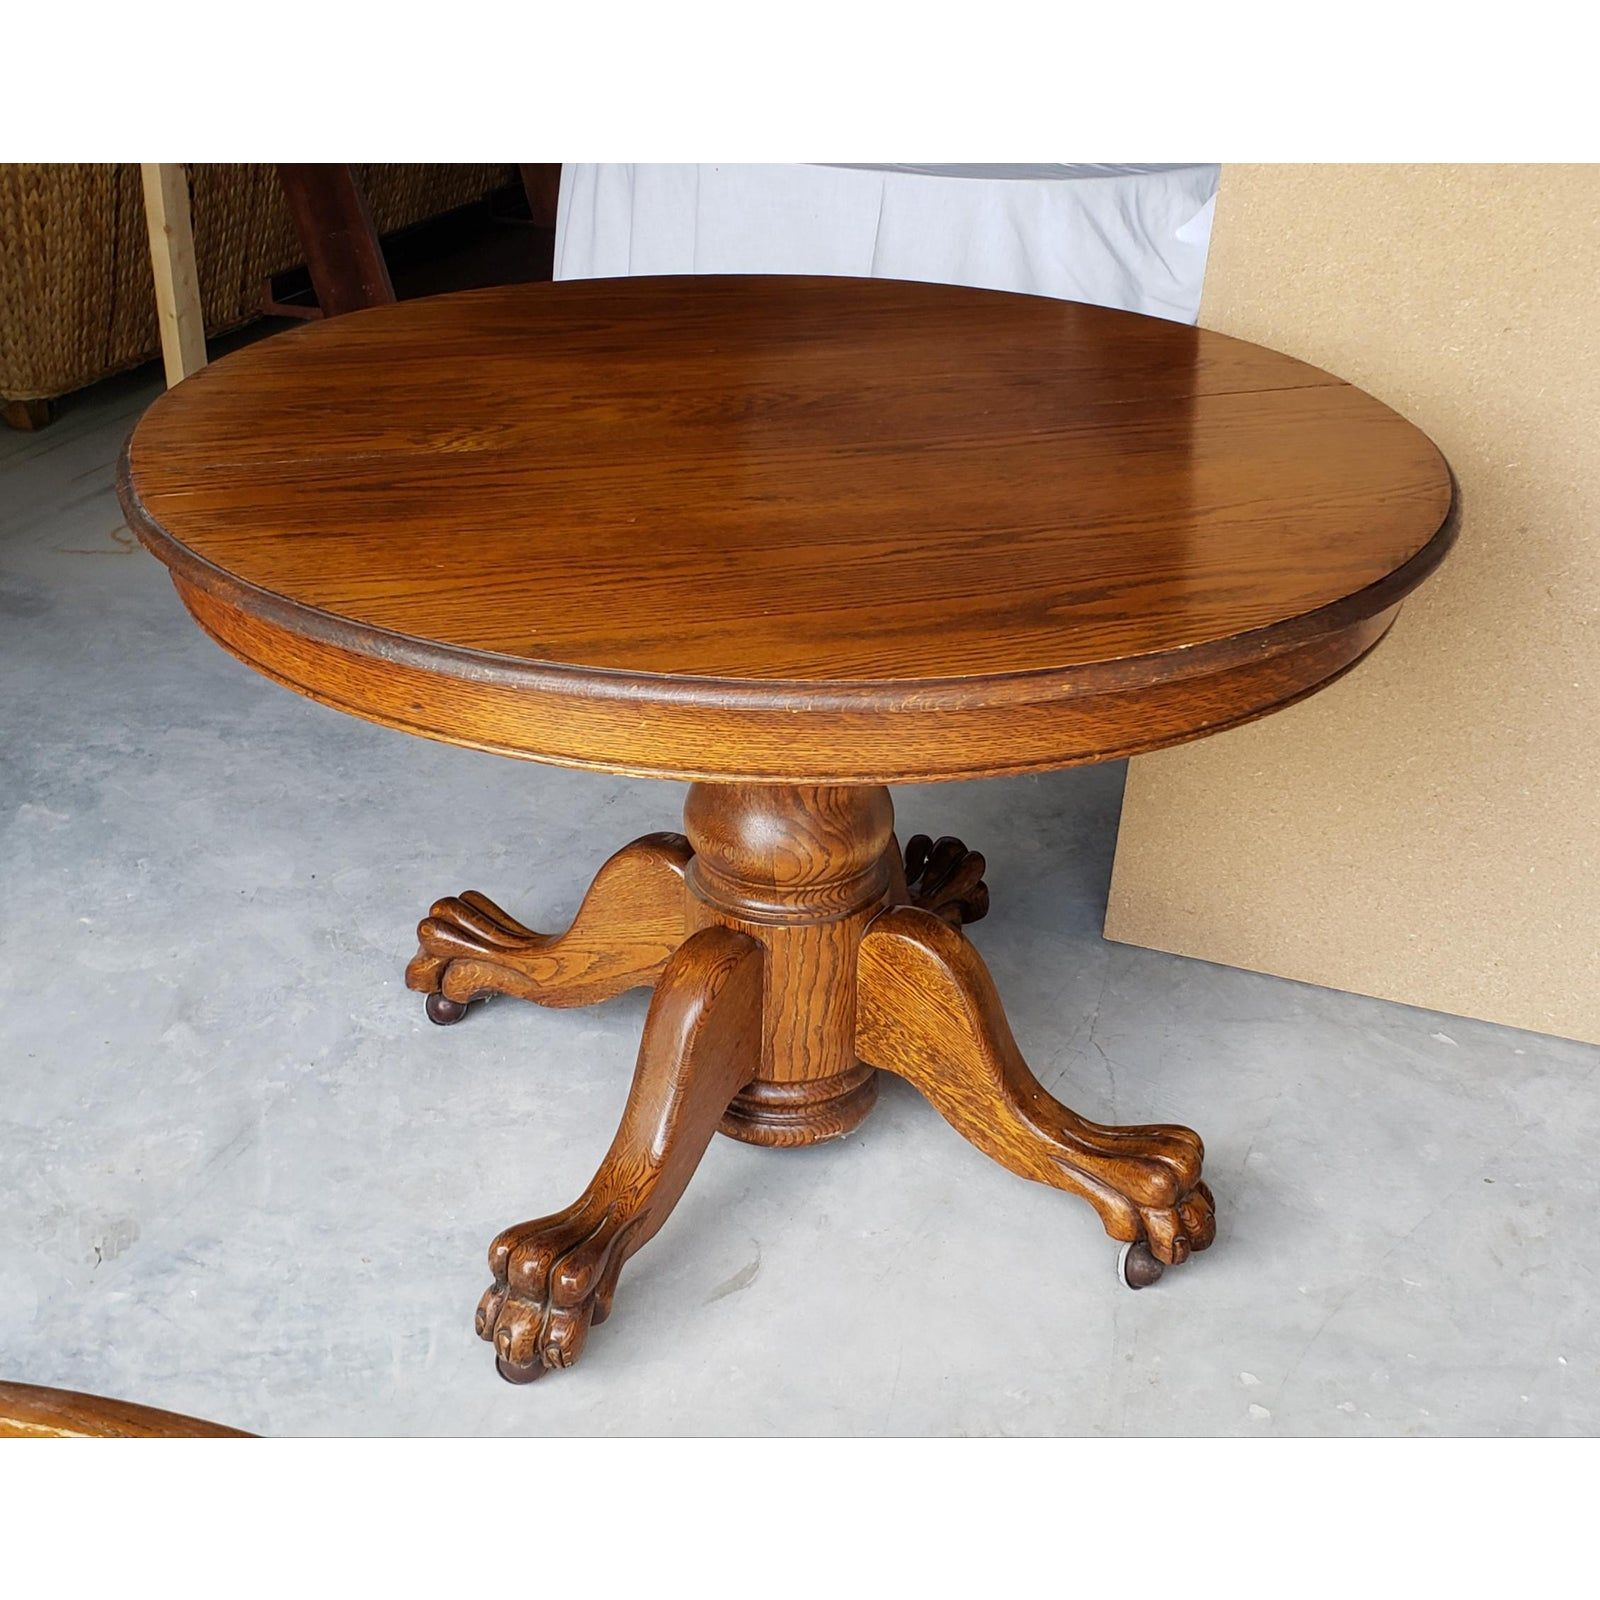 1930s Mid Century Modern Solid Oak Claw Foot Table On Casters In 2020 Clawfoot Solid Oak Table